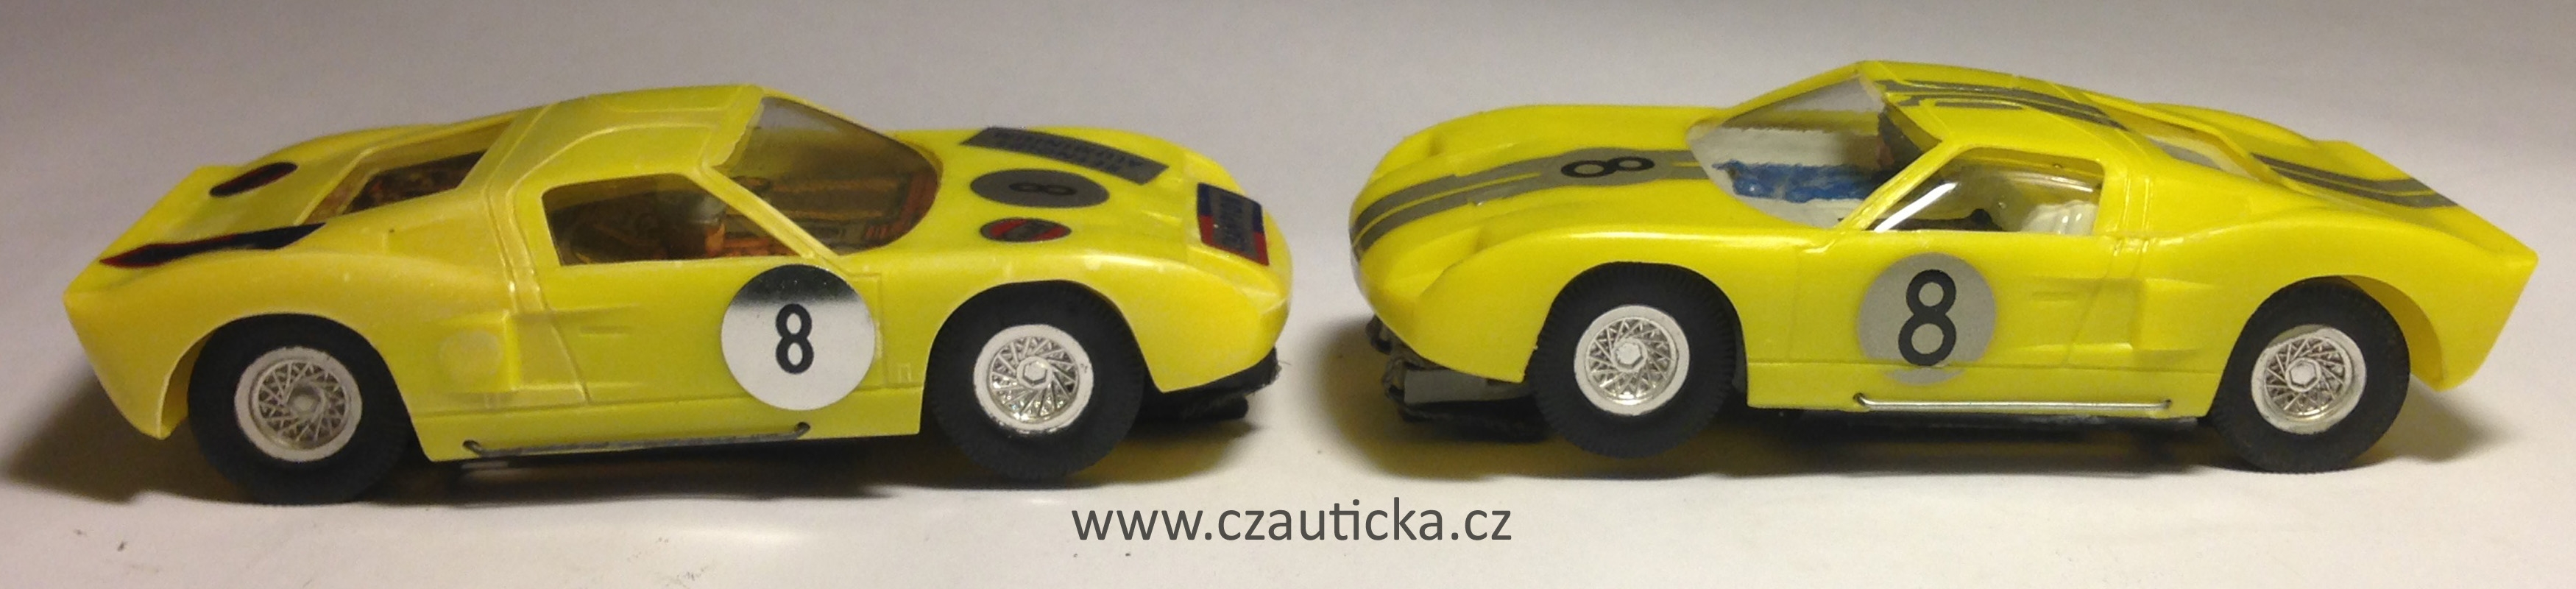 ites ford gt zluta 2